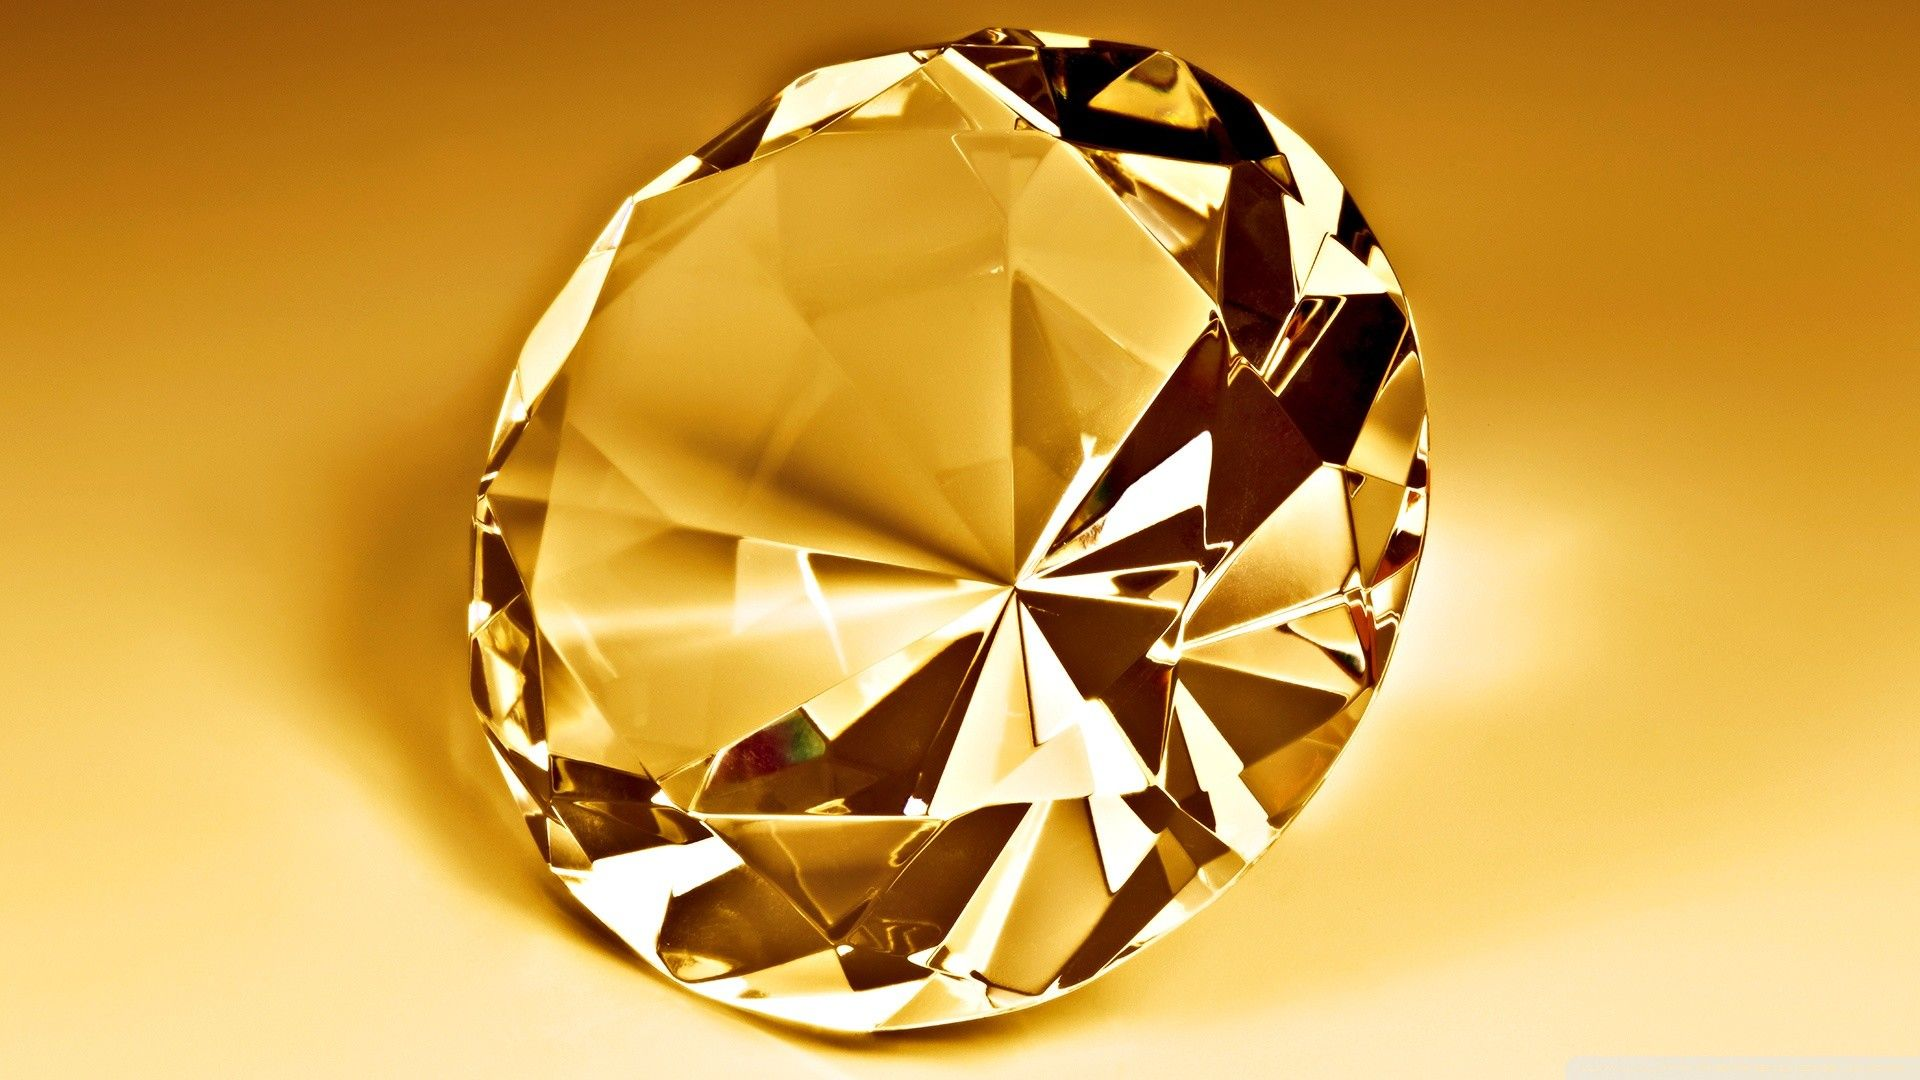 Gold Diamond Wallpapers Top Free Gold Diamond Backgrounds